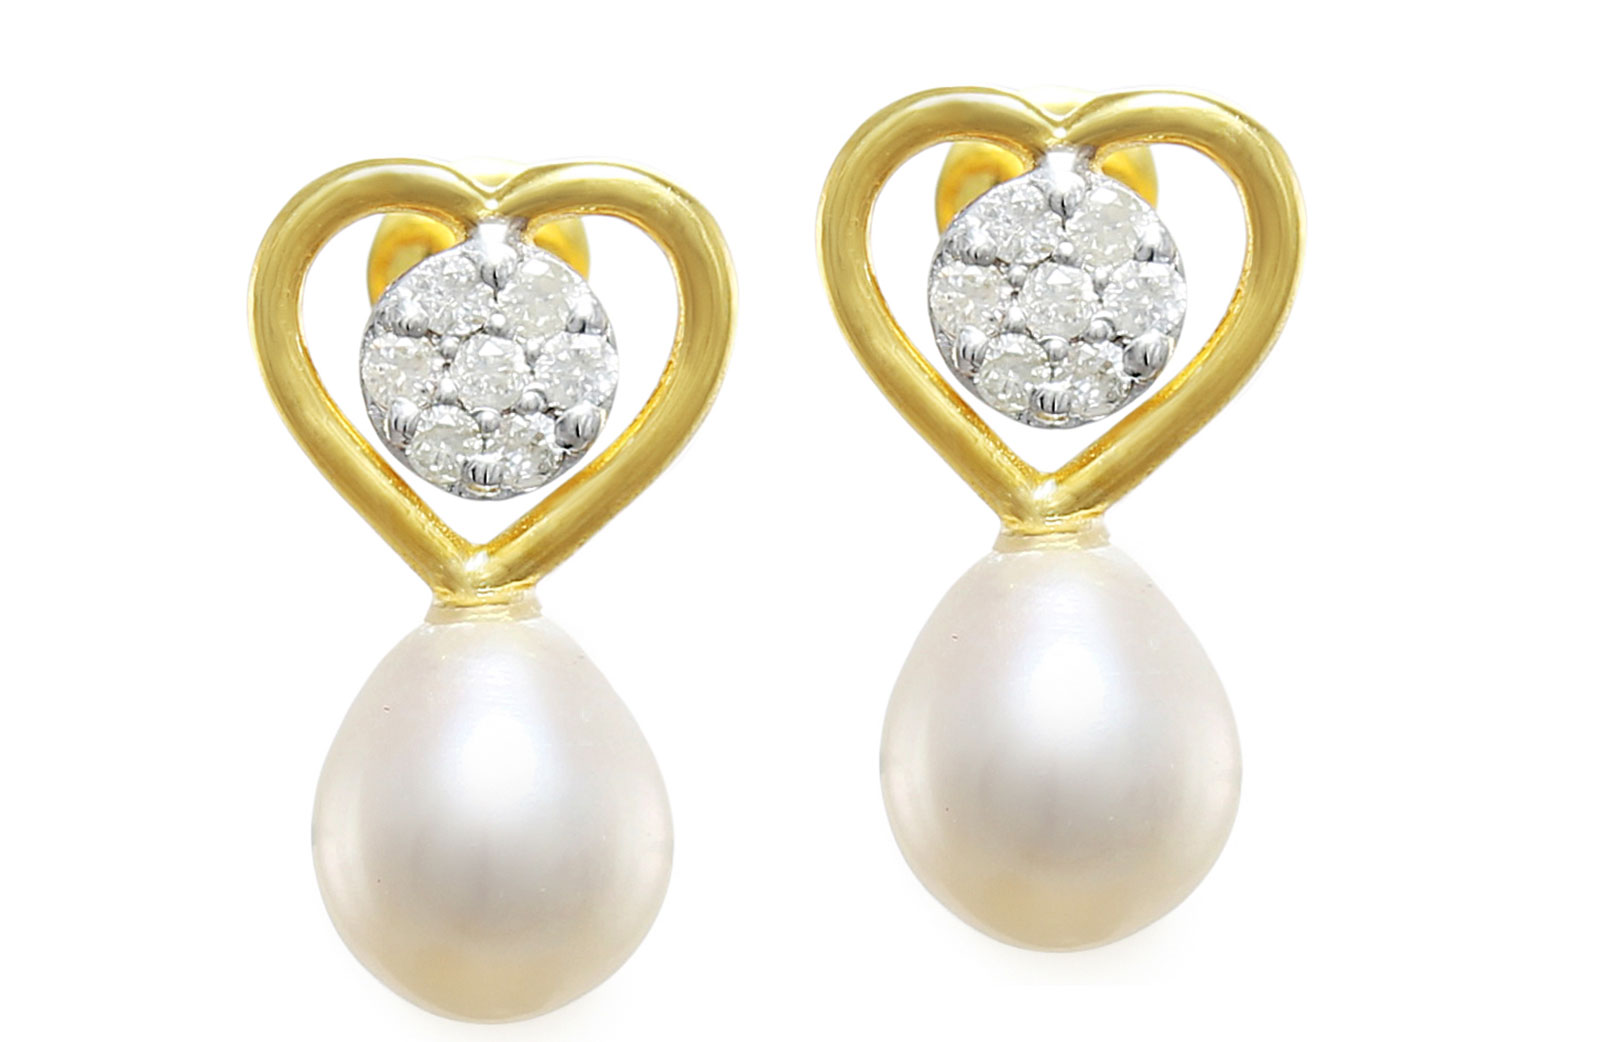 Vera Perla 18K Solid Gold and 0.14Cts Diamonds and 7mm Pearls Solitaire Heart Earrings